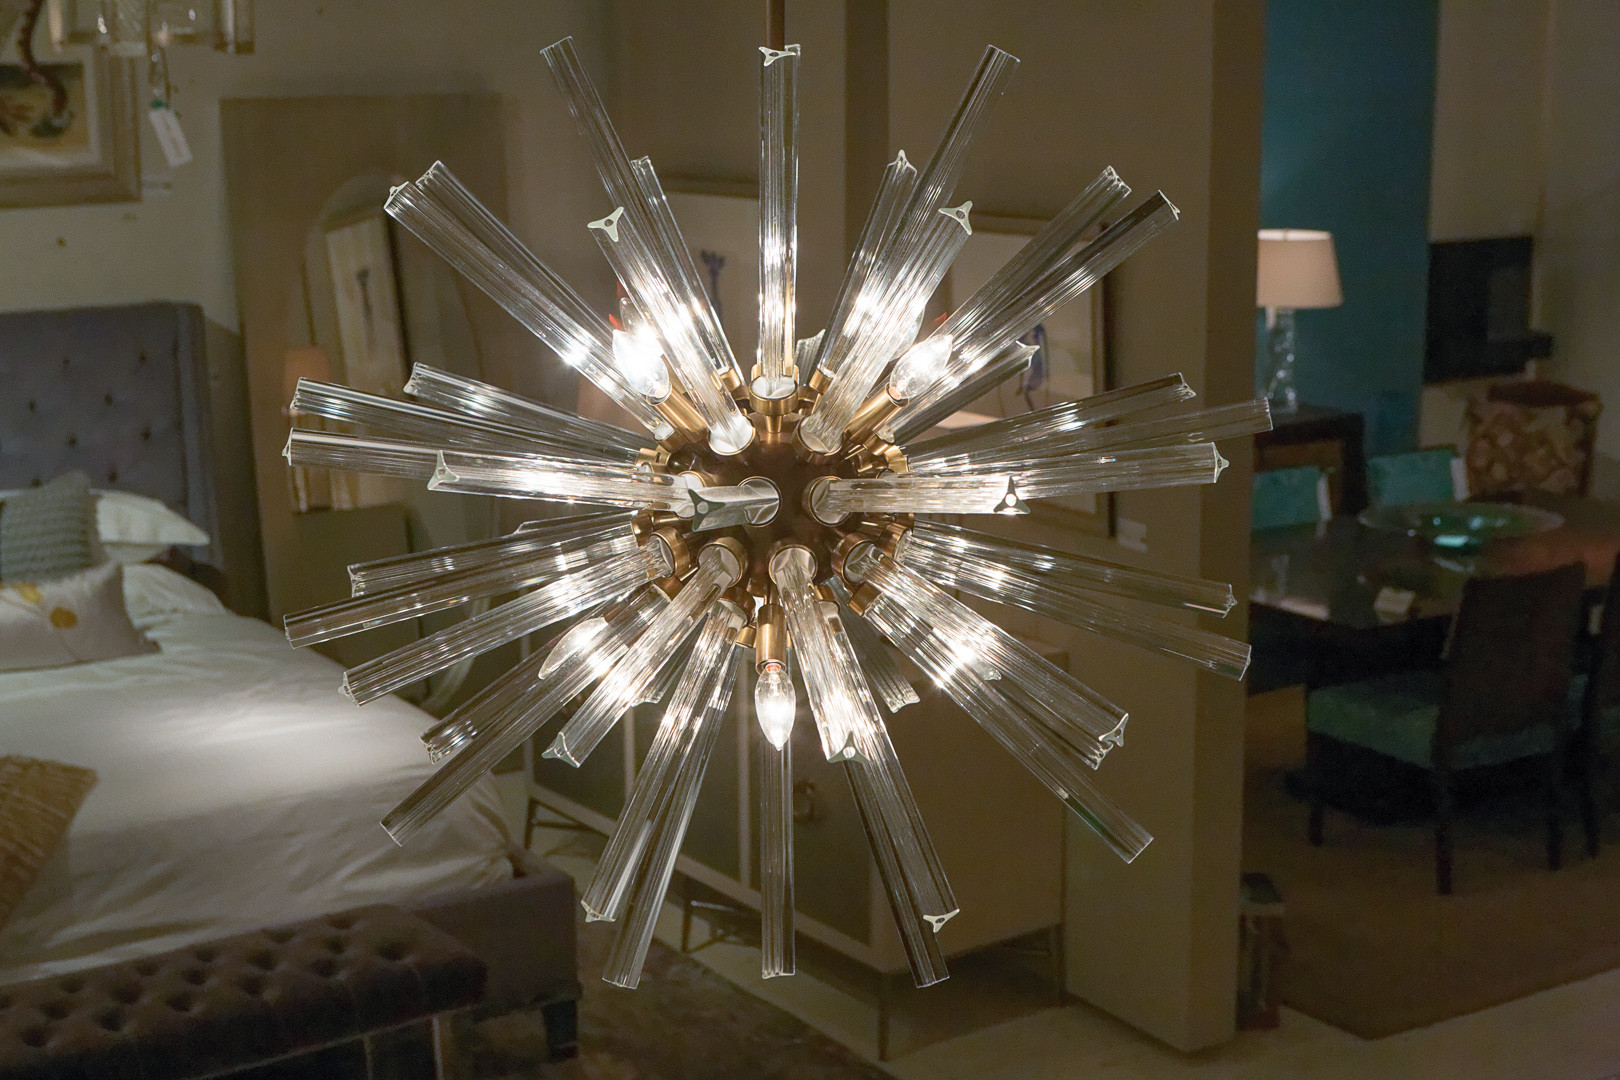 lamp  chandelier wonderful collections from arteriors for home  - arteriors  zanadoo arteriors  arteriors home carrollton tx